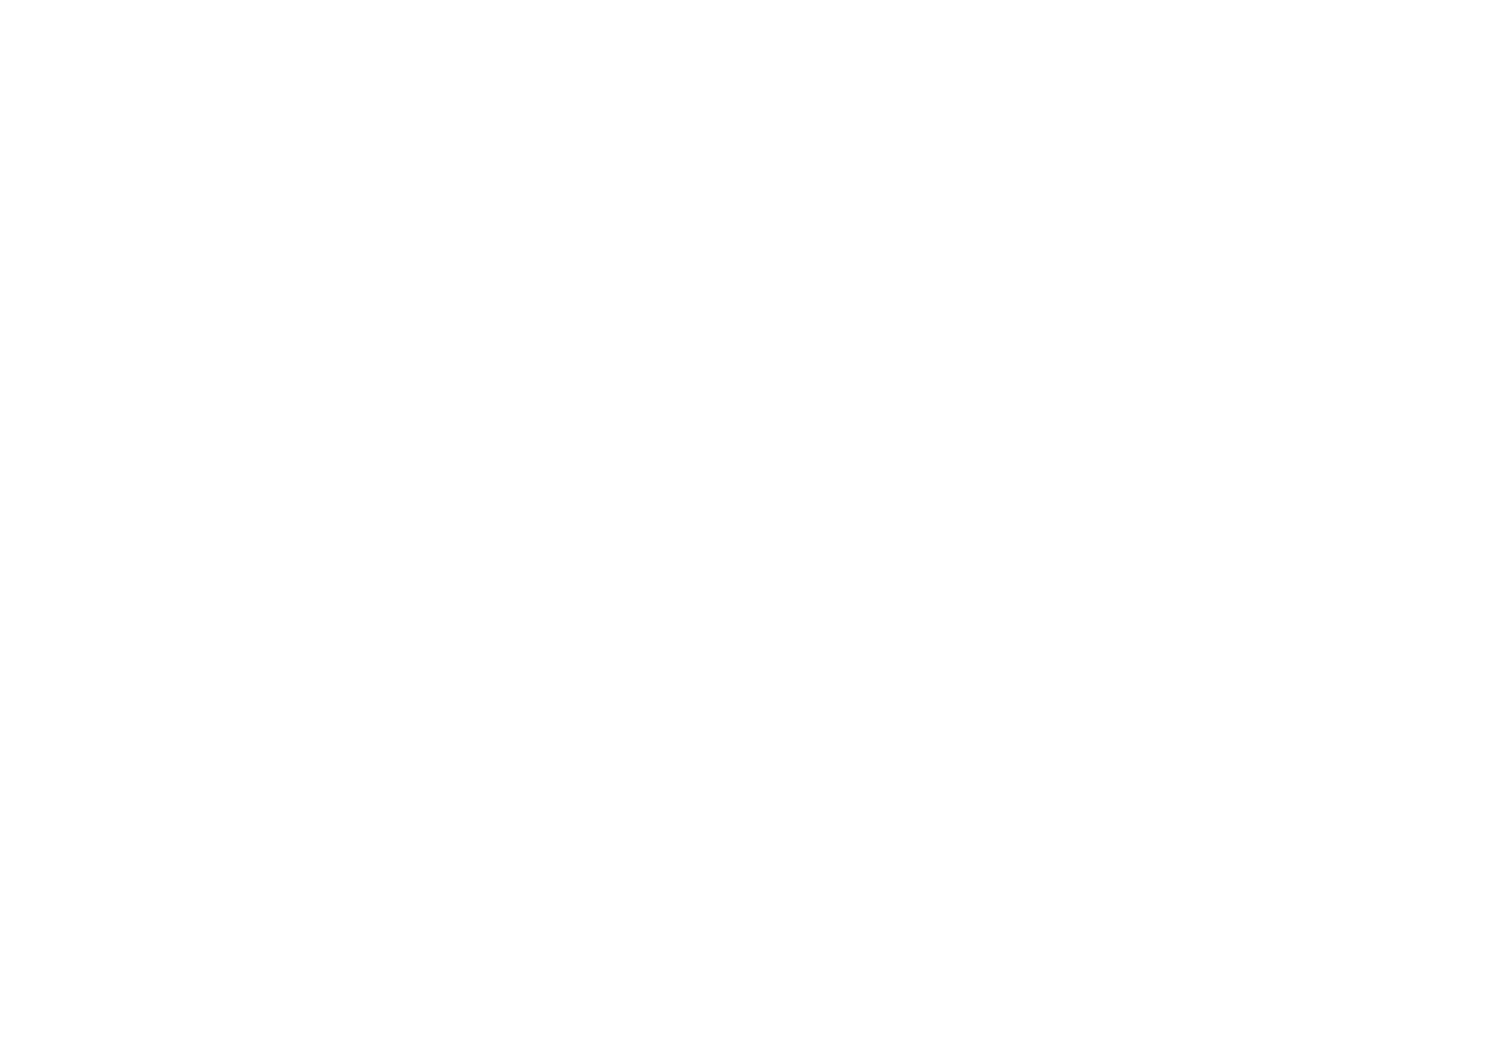 Seattle Bartending Co.